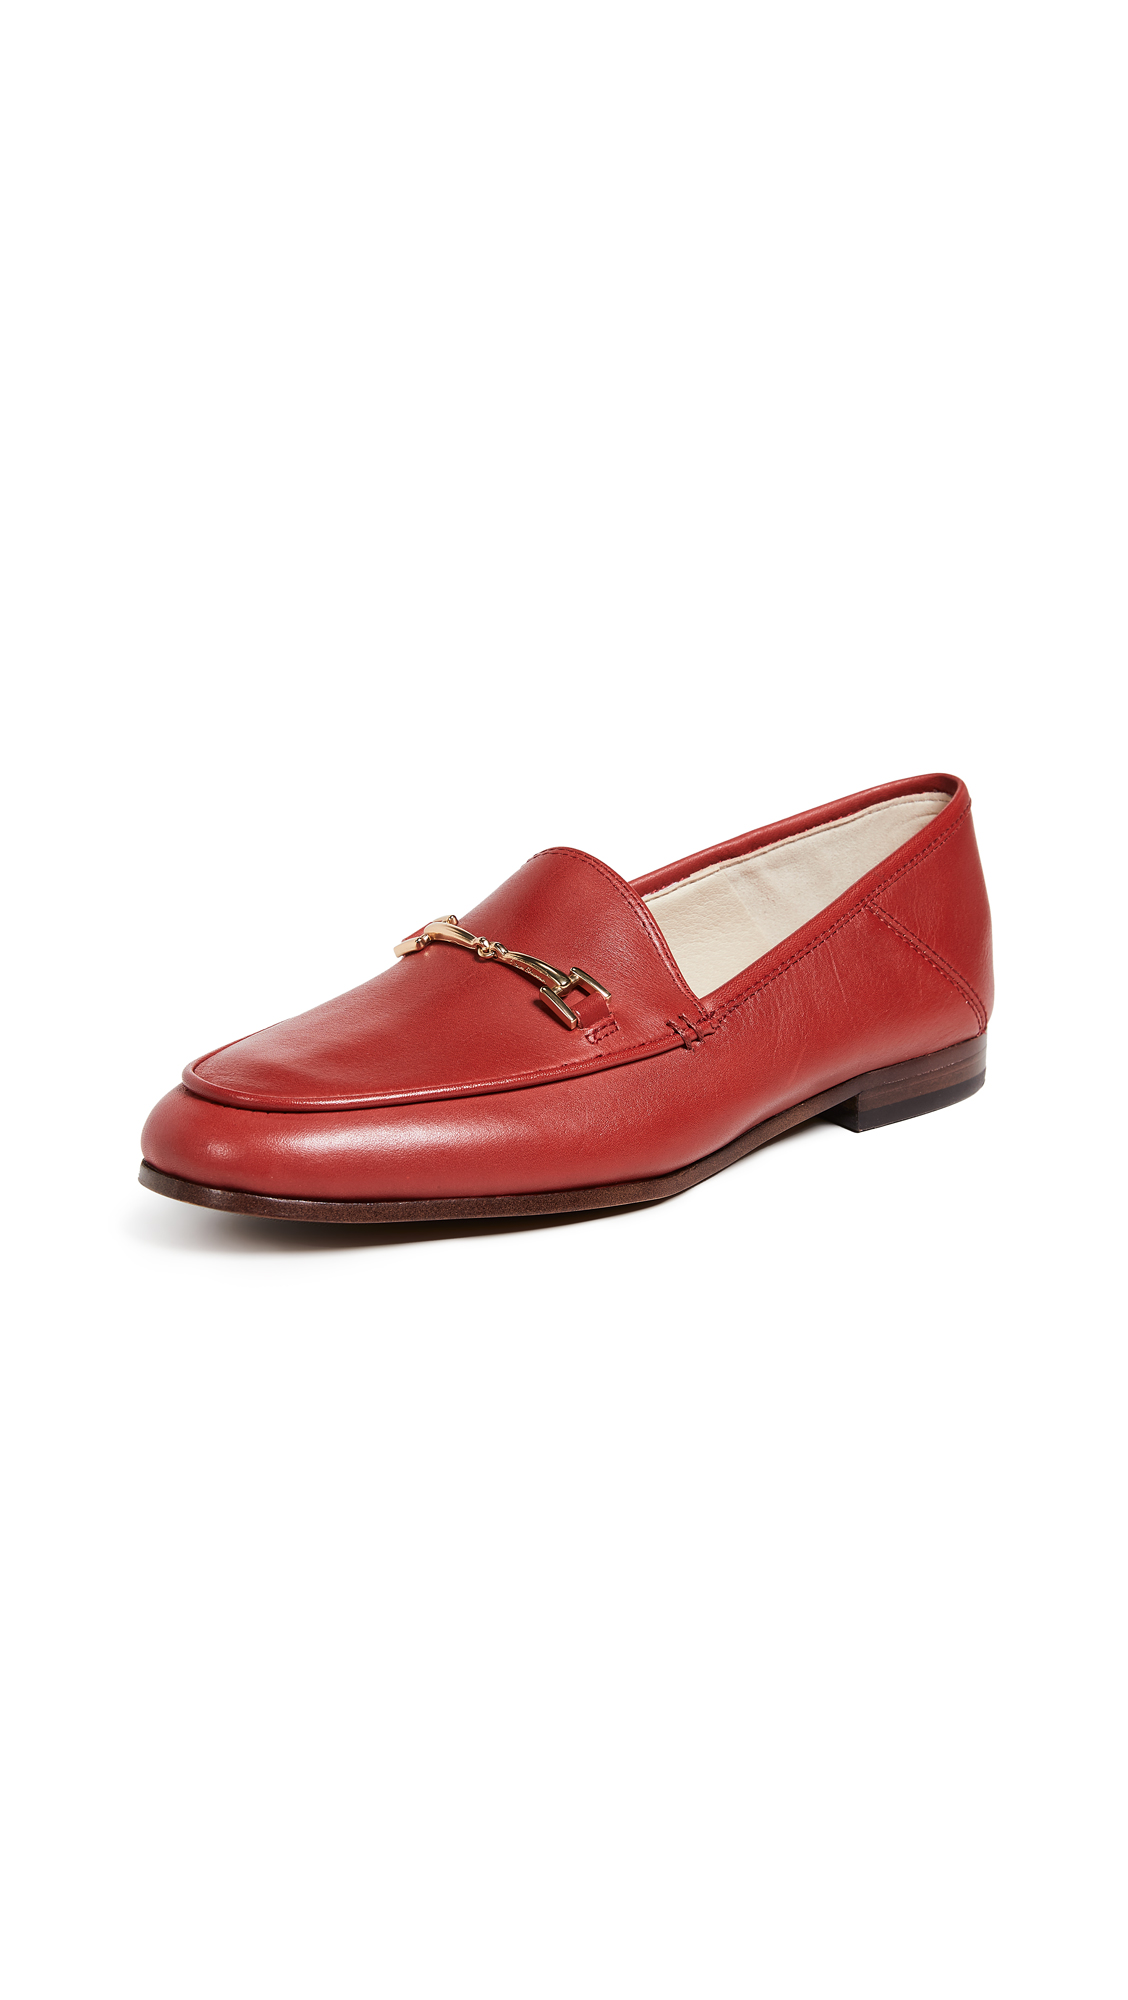 Sam Edelman Loraine Loafers - Deep Red